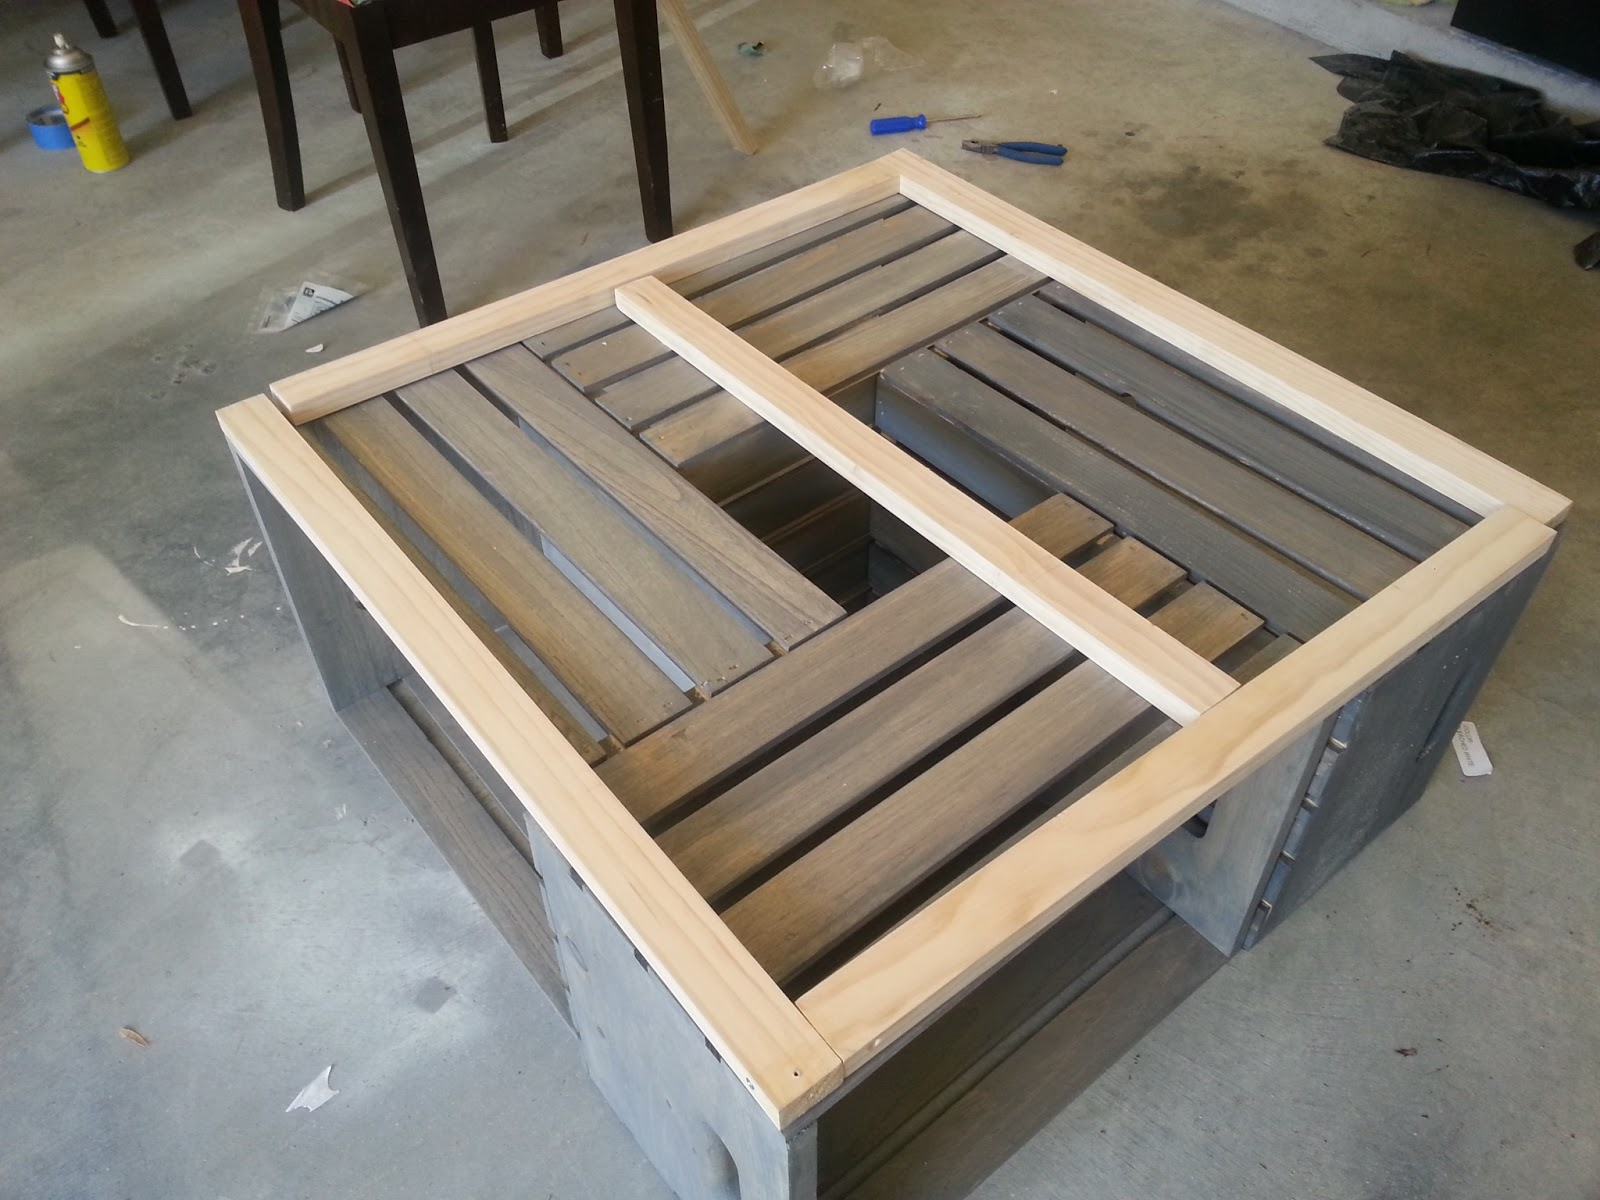 DIY Lori DIY Crate Coffee Table